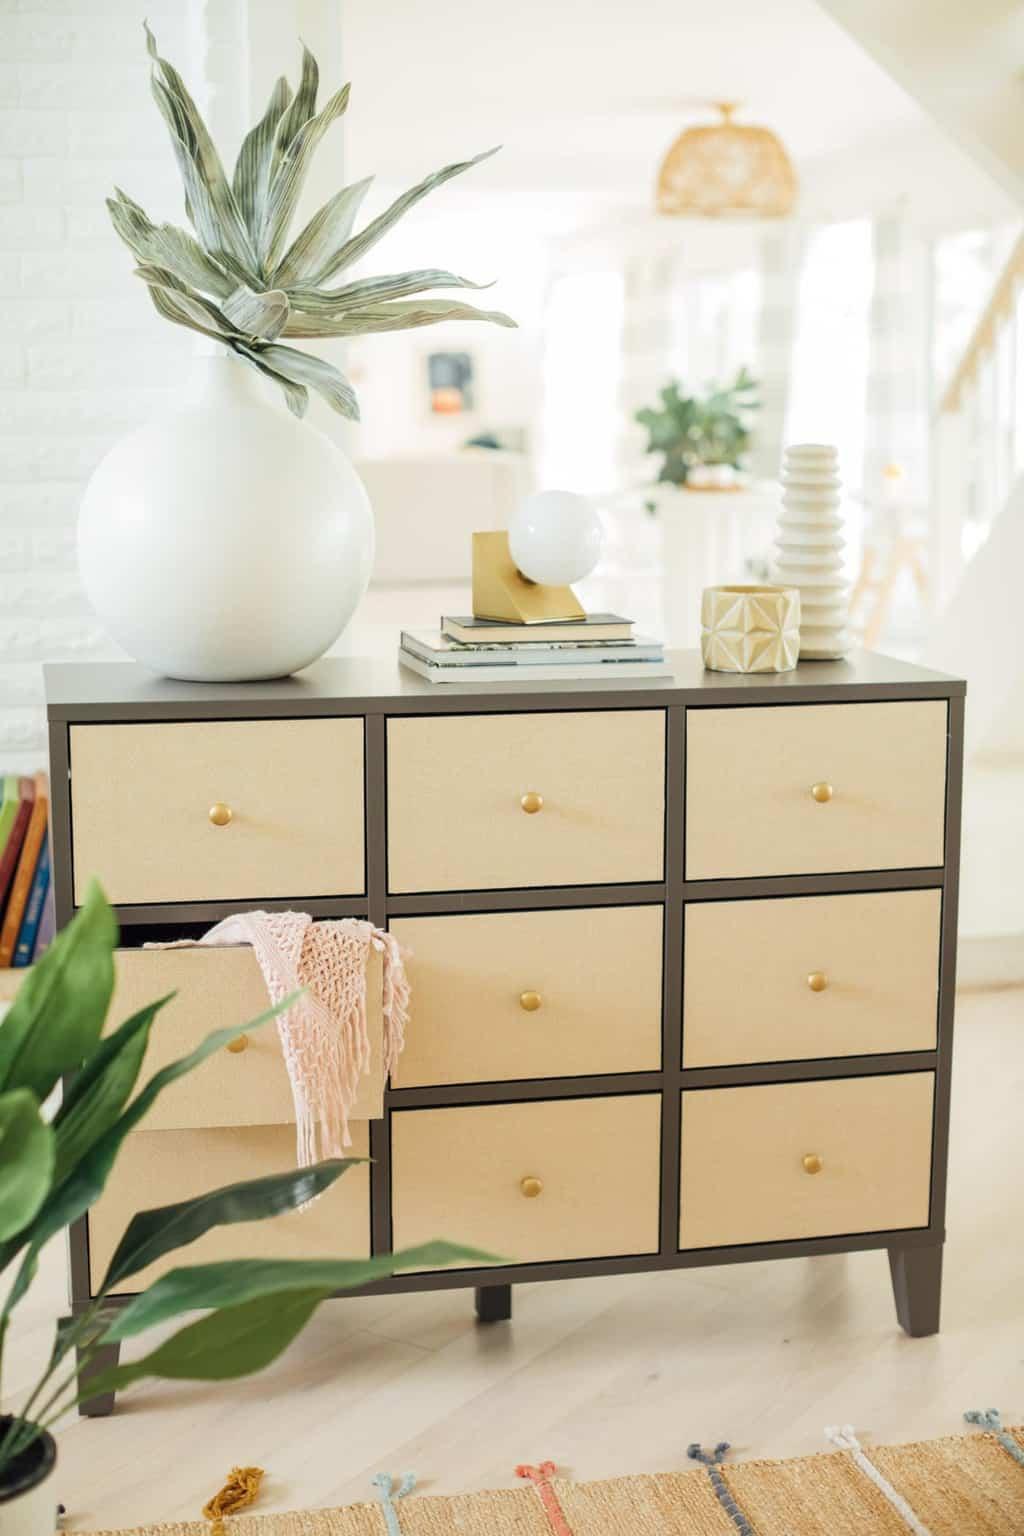 styled ikea drawers in a living room